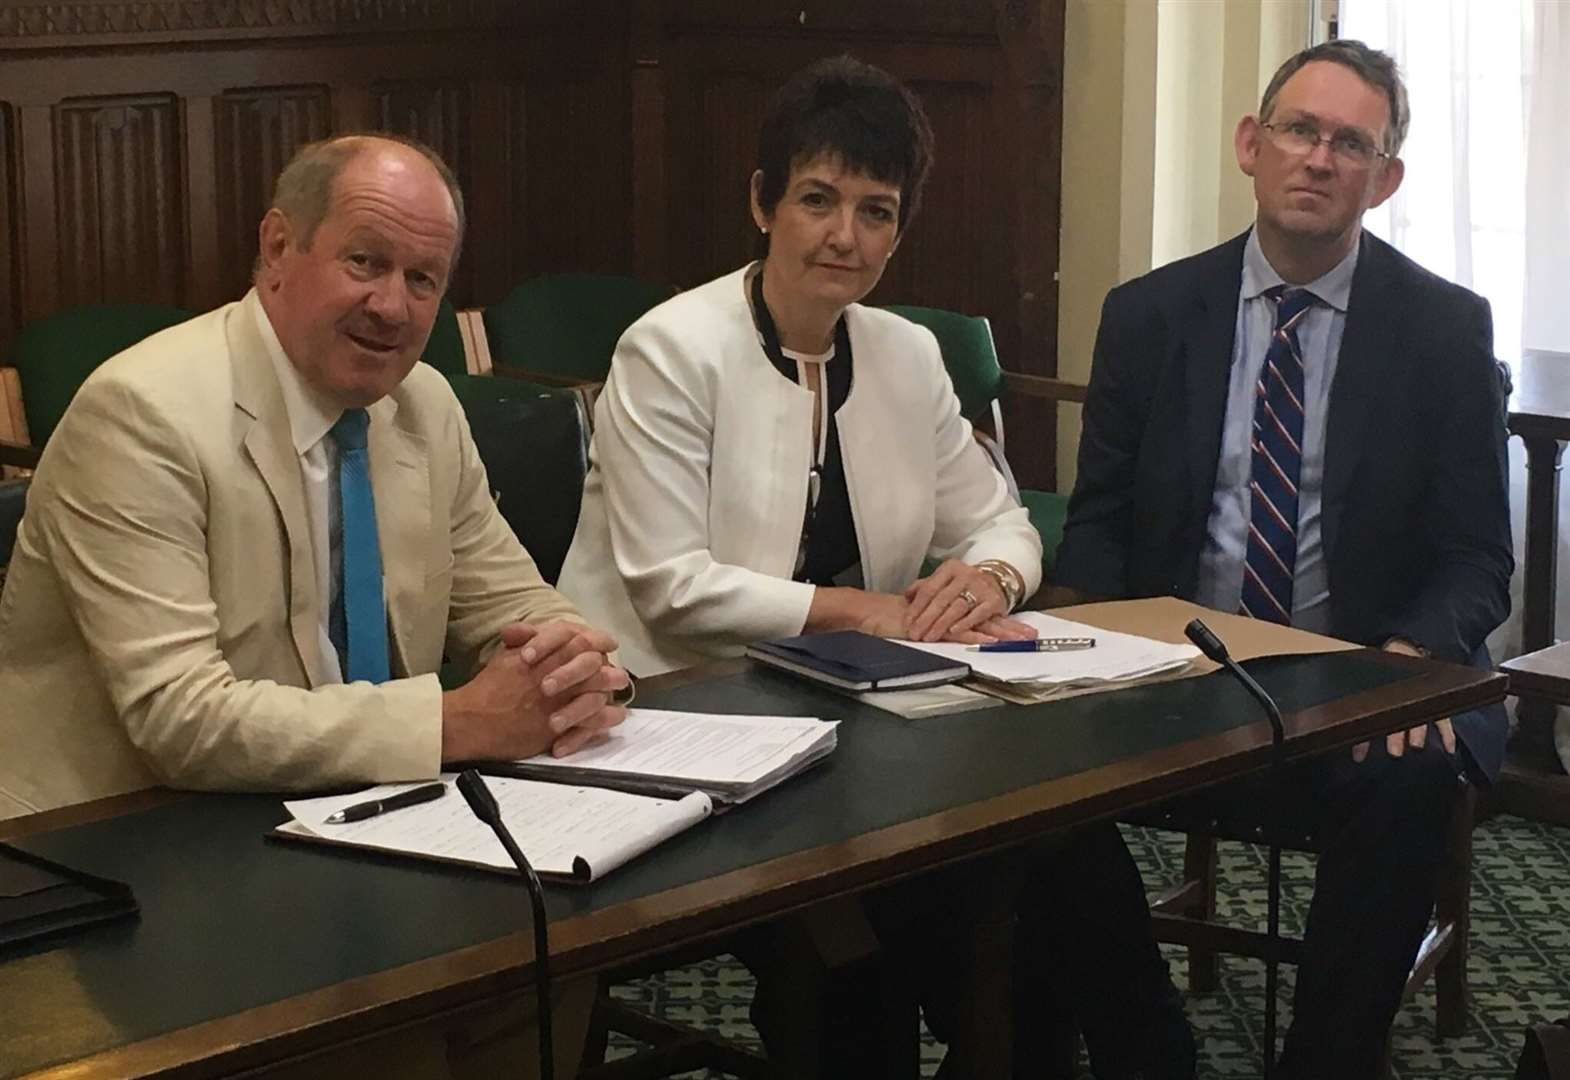 Bury St Edmunds MP calls for access to justice solution in meeting with Government minister